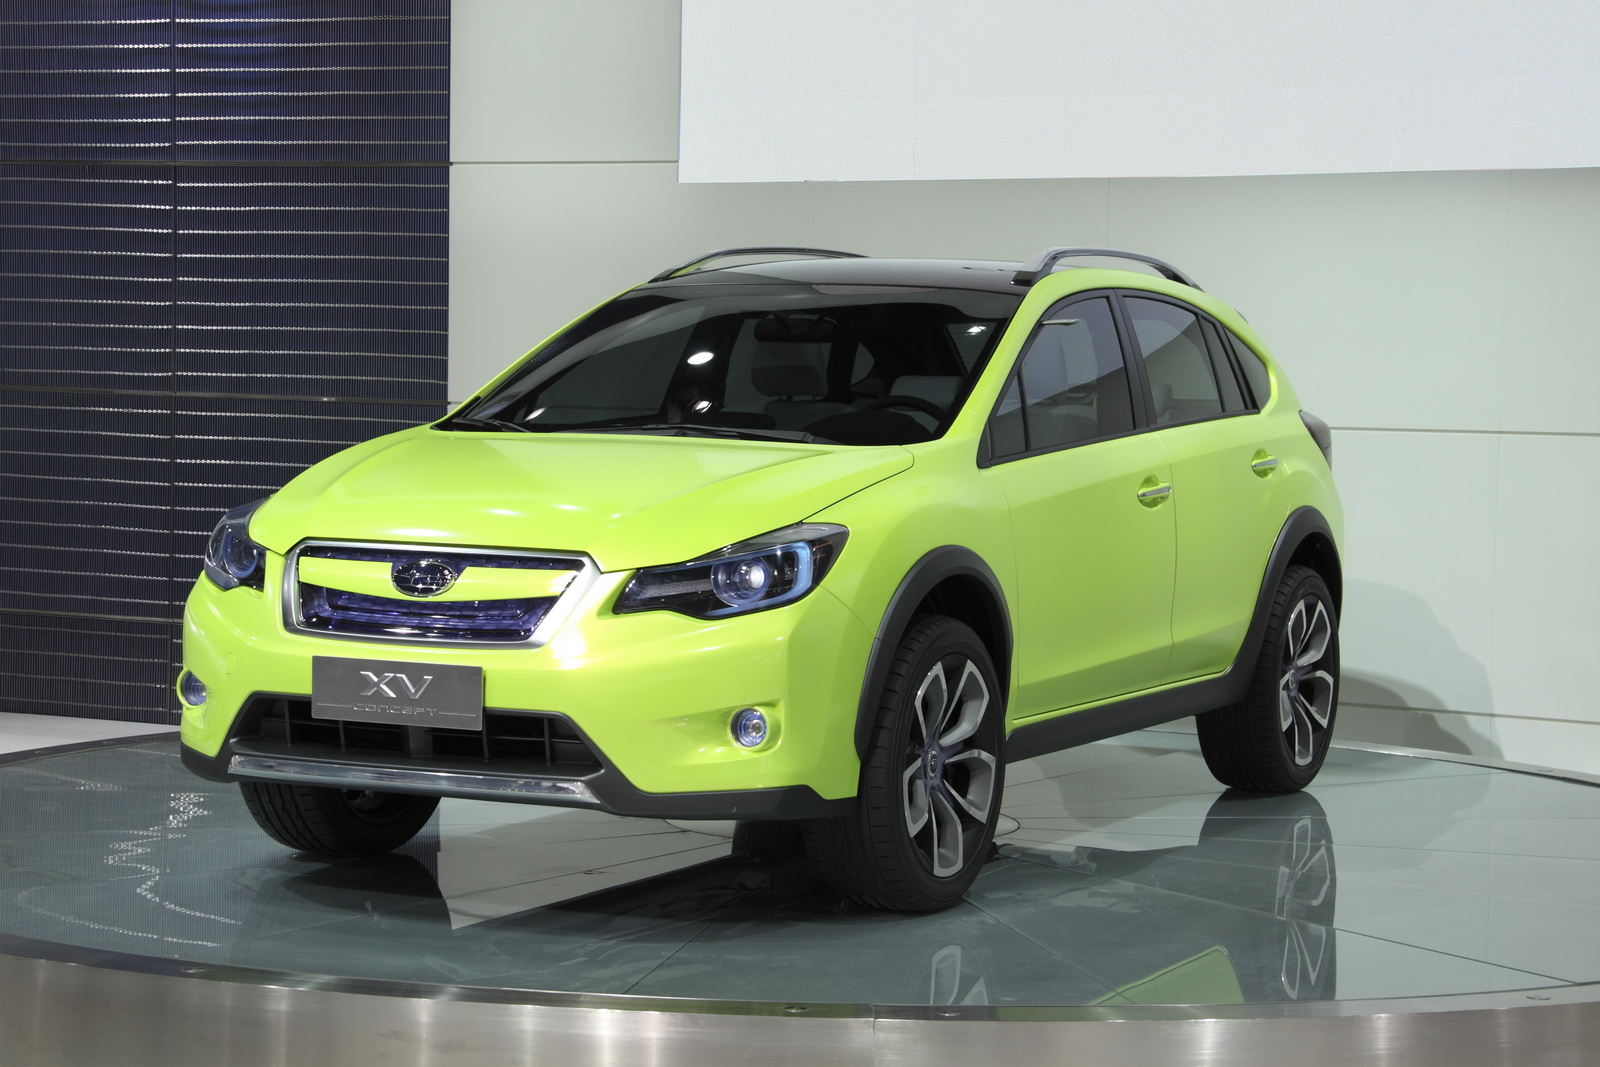 All New Subaru Xv To Make World Premiere At 64th